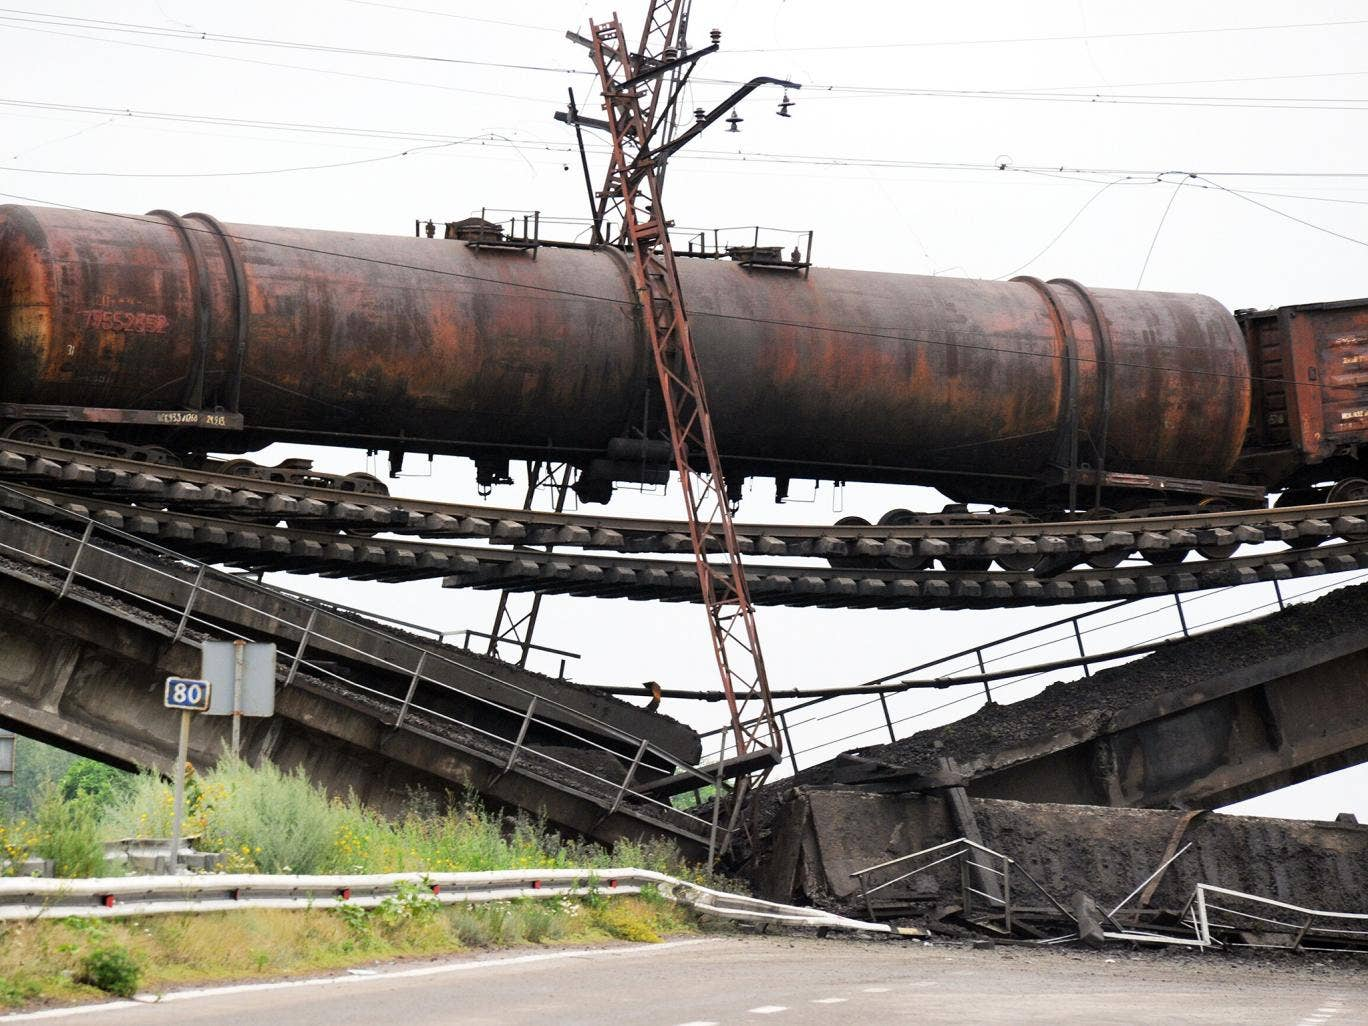 A railway bridge, damaged during the night of 6-7 July, near the village of Novobakhmutivka, 30 km north of Donetsk